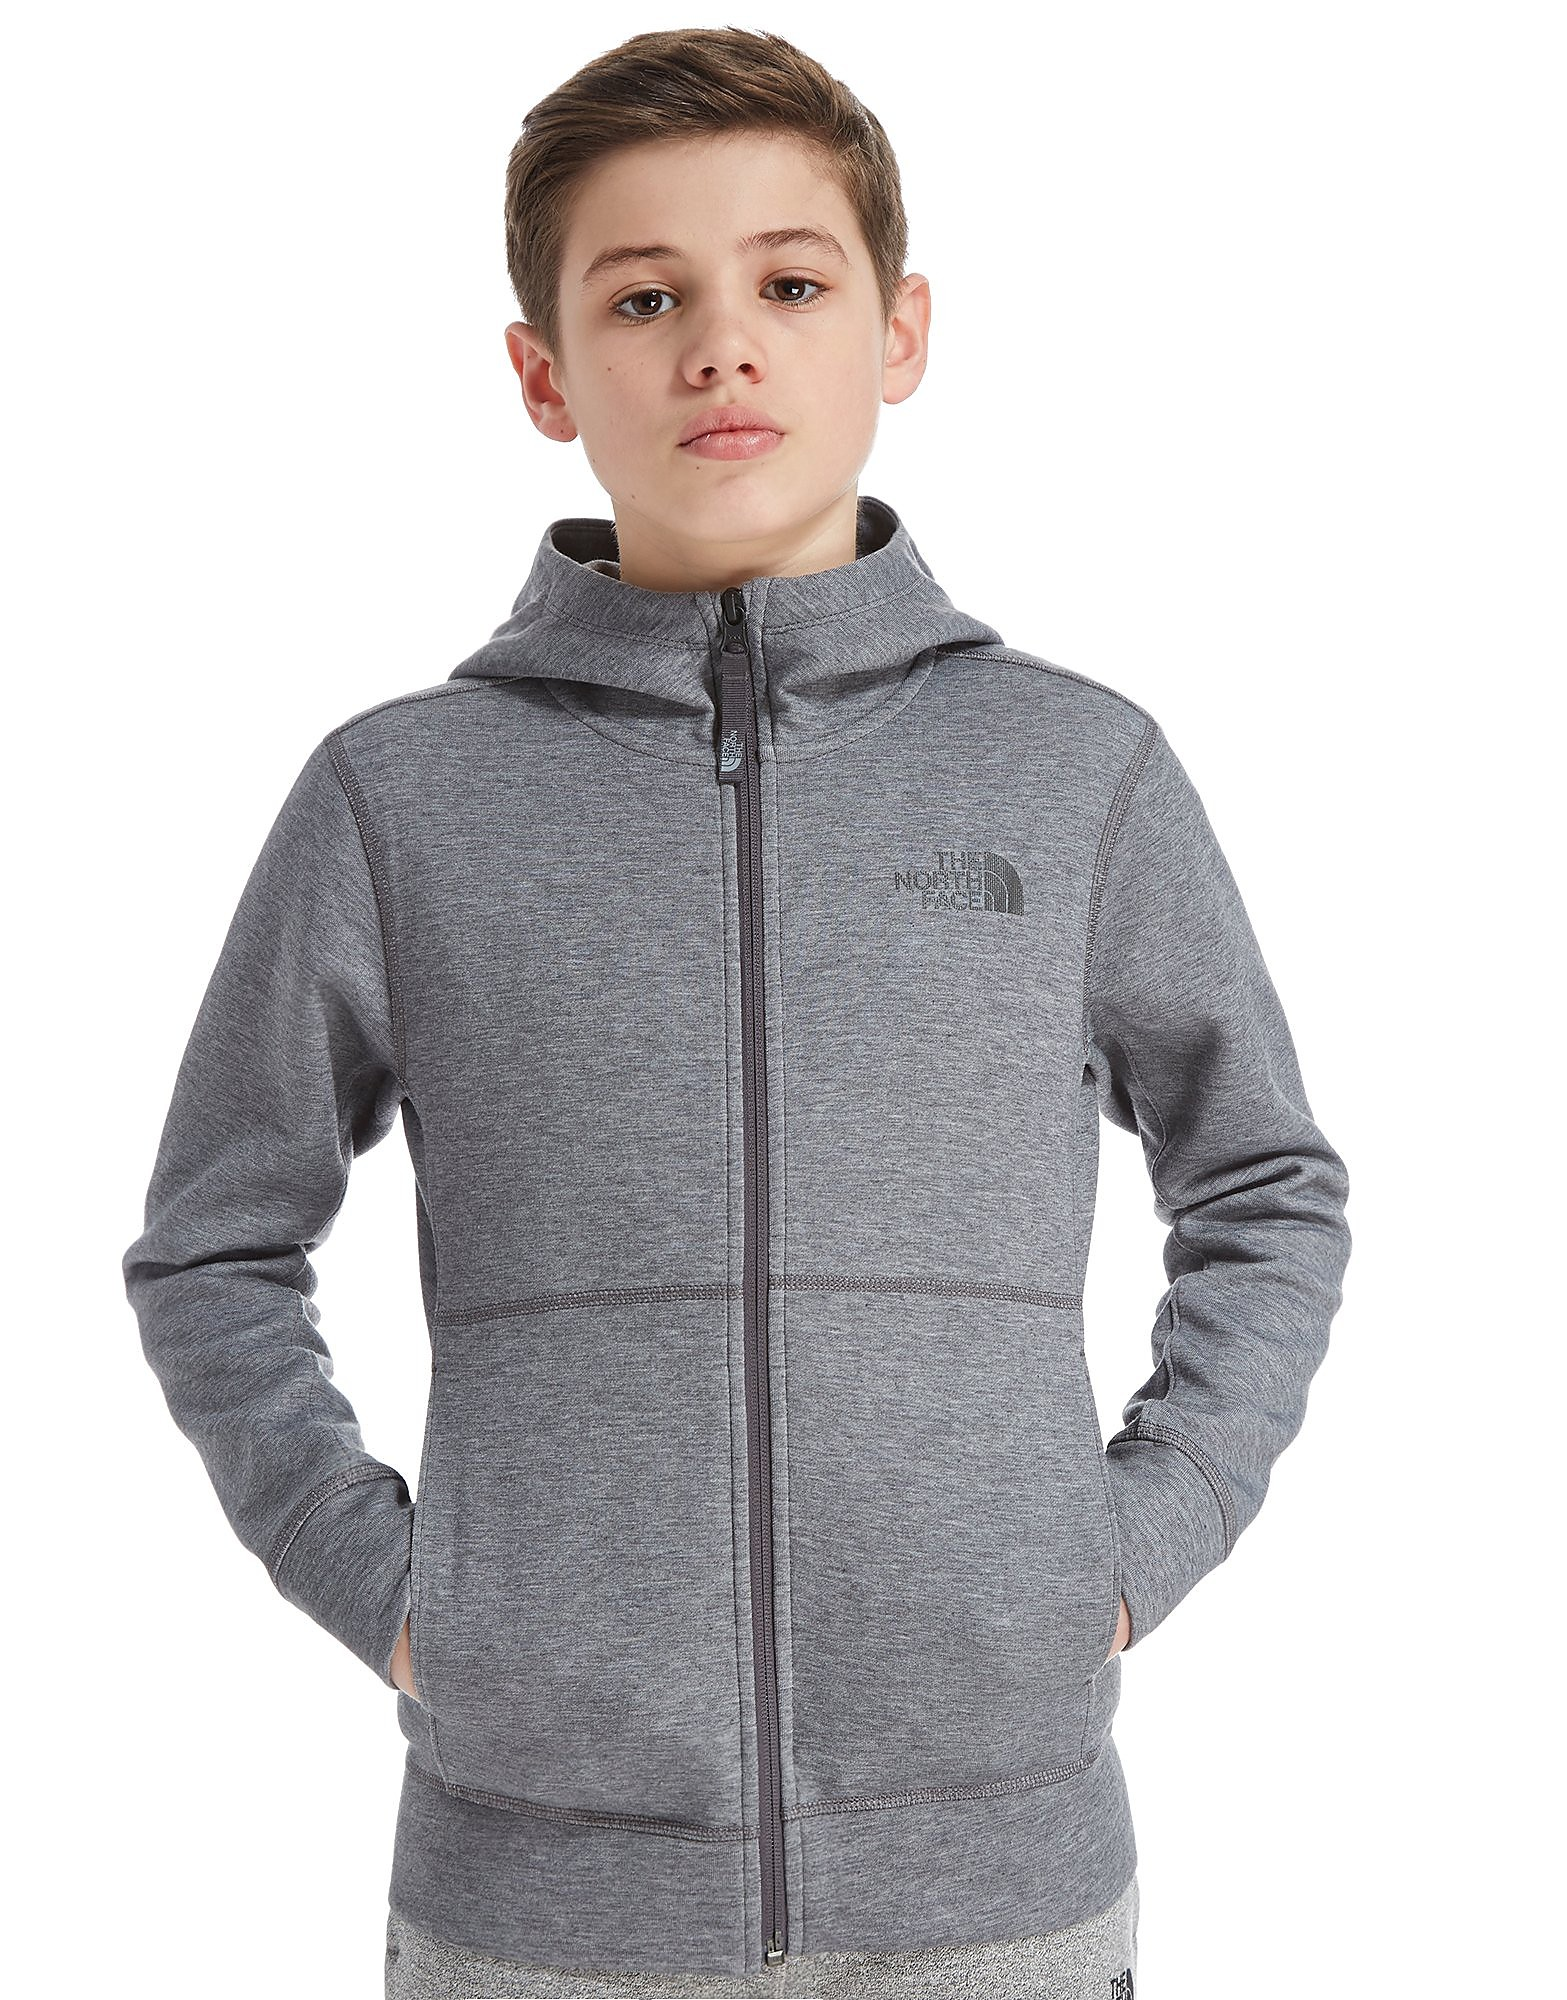 The North Face Slacker Full Zip Hoodie Junior